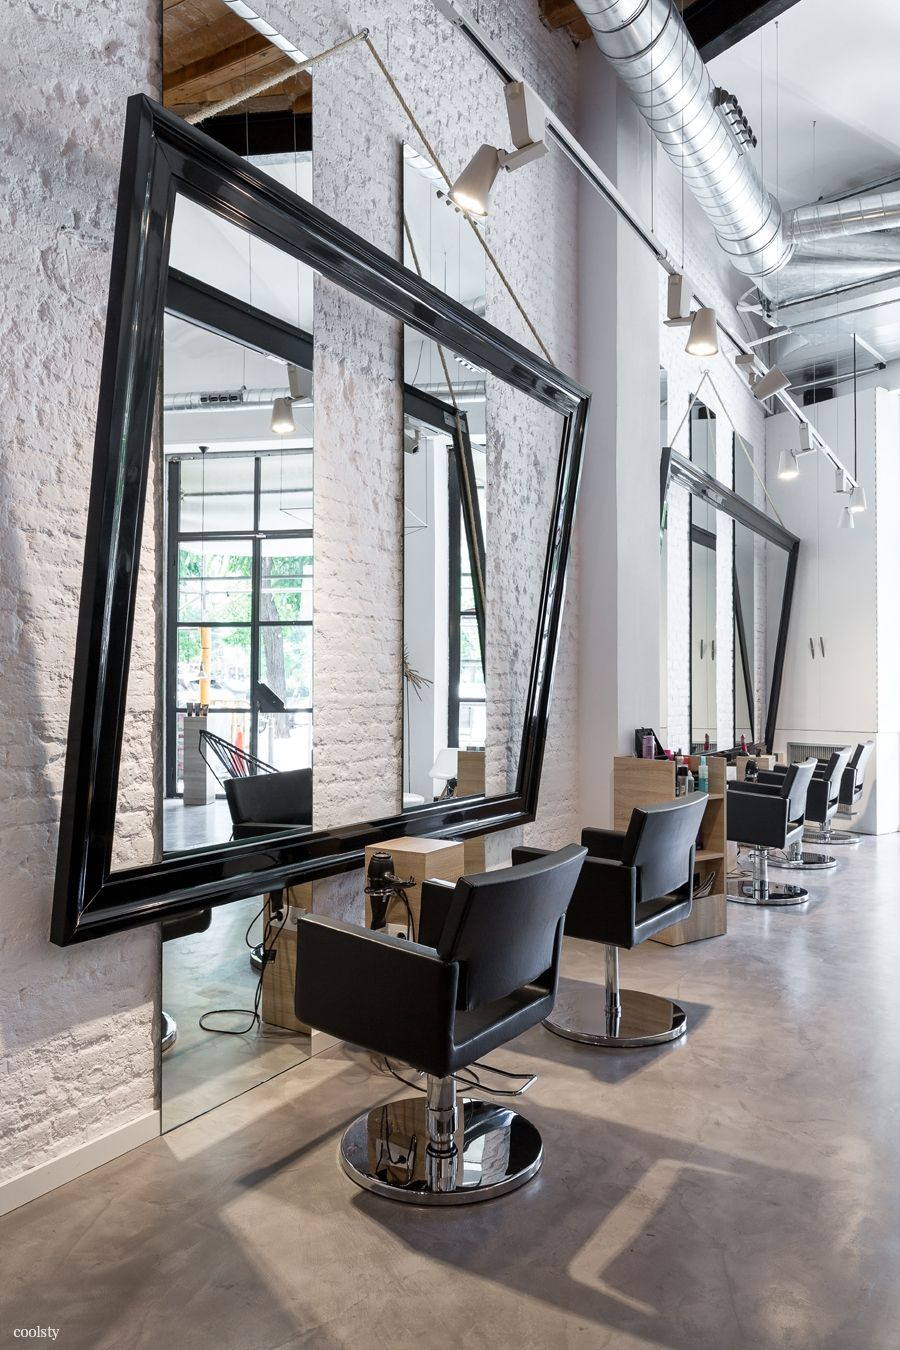 Dream Salon Love The Large Mirror Foorni Pl Salon Fryzjerski